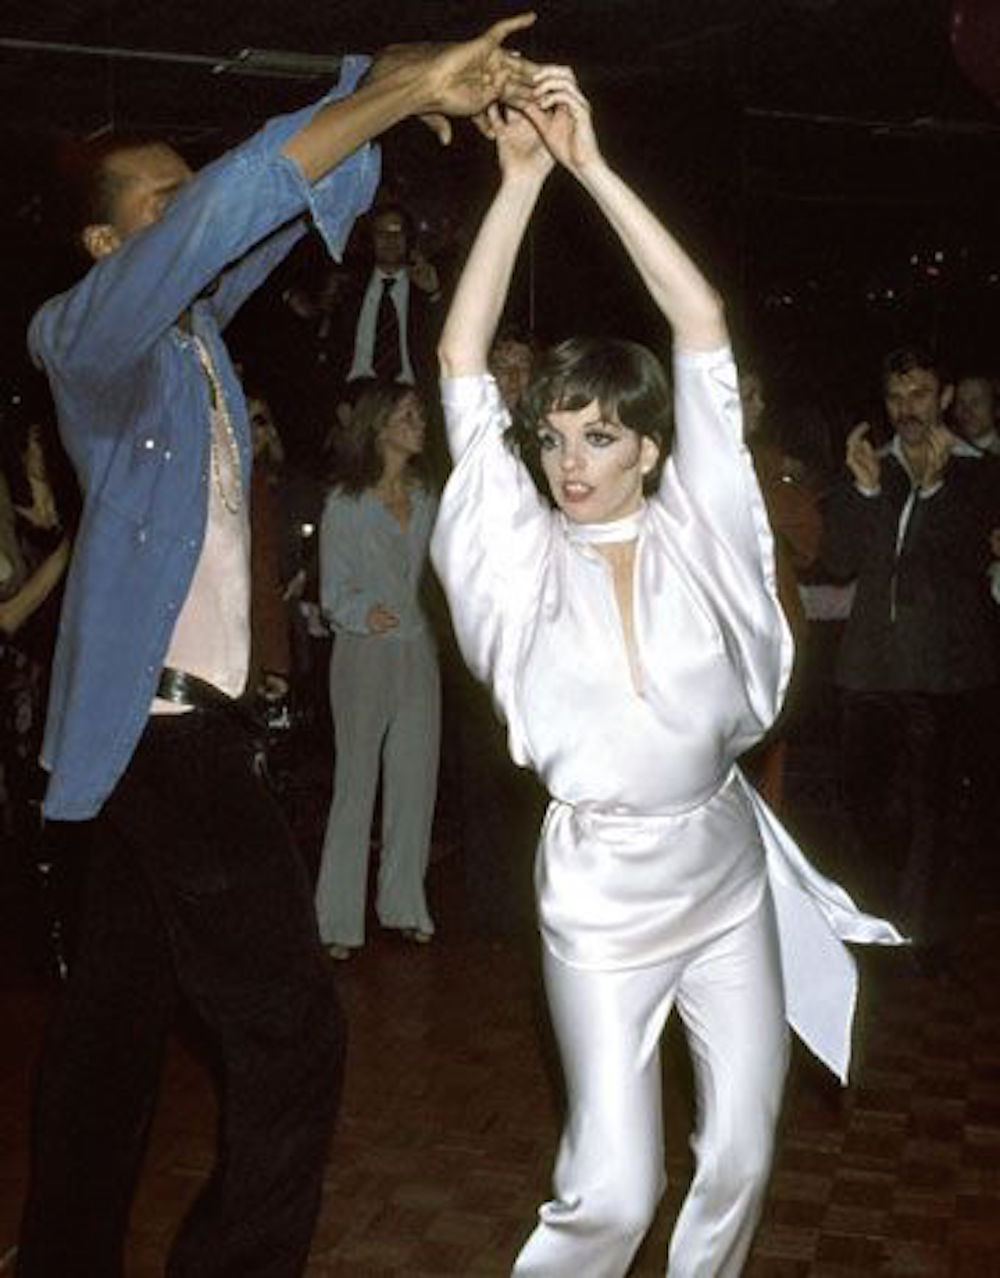 Bianca jagger studio 54 fashion See Bianca Jagger s Style, an Original It Girl - The Cut